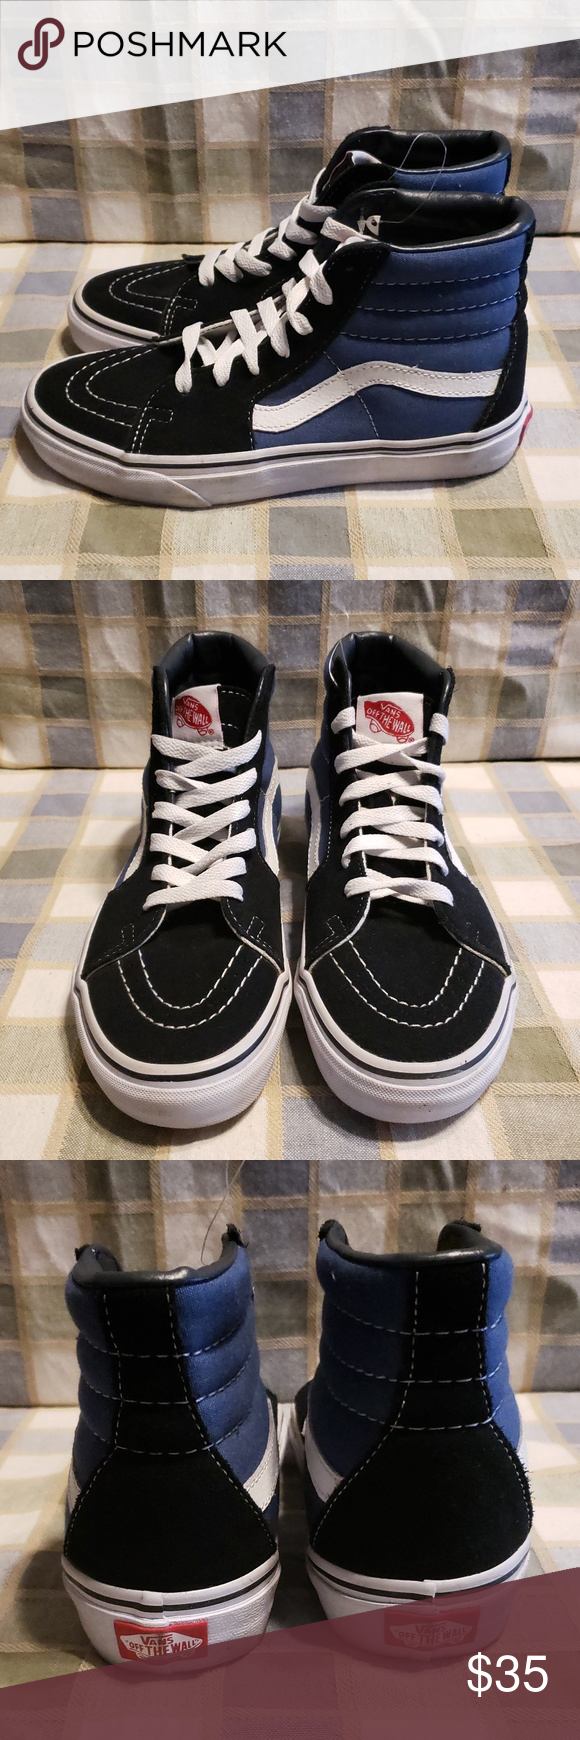 572ce8159ac815 Vans Off The Wall Leather Black Blue High Tops Red mark on size tag. Vans  Off The Wall Leather High Top Skateboarding Sneaker Color  Black   Blue  Size  M 5 ...